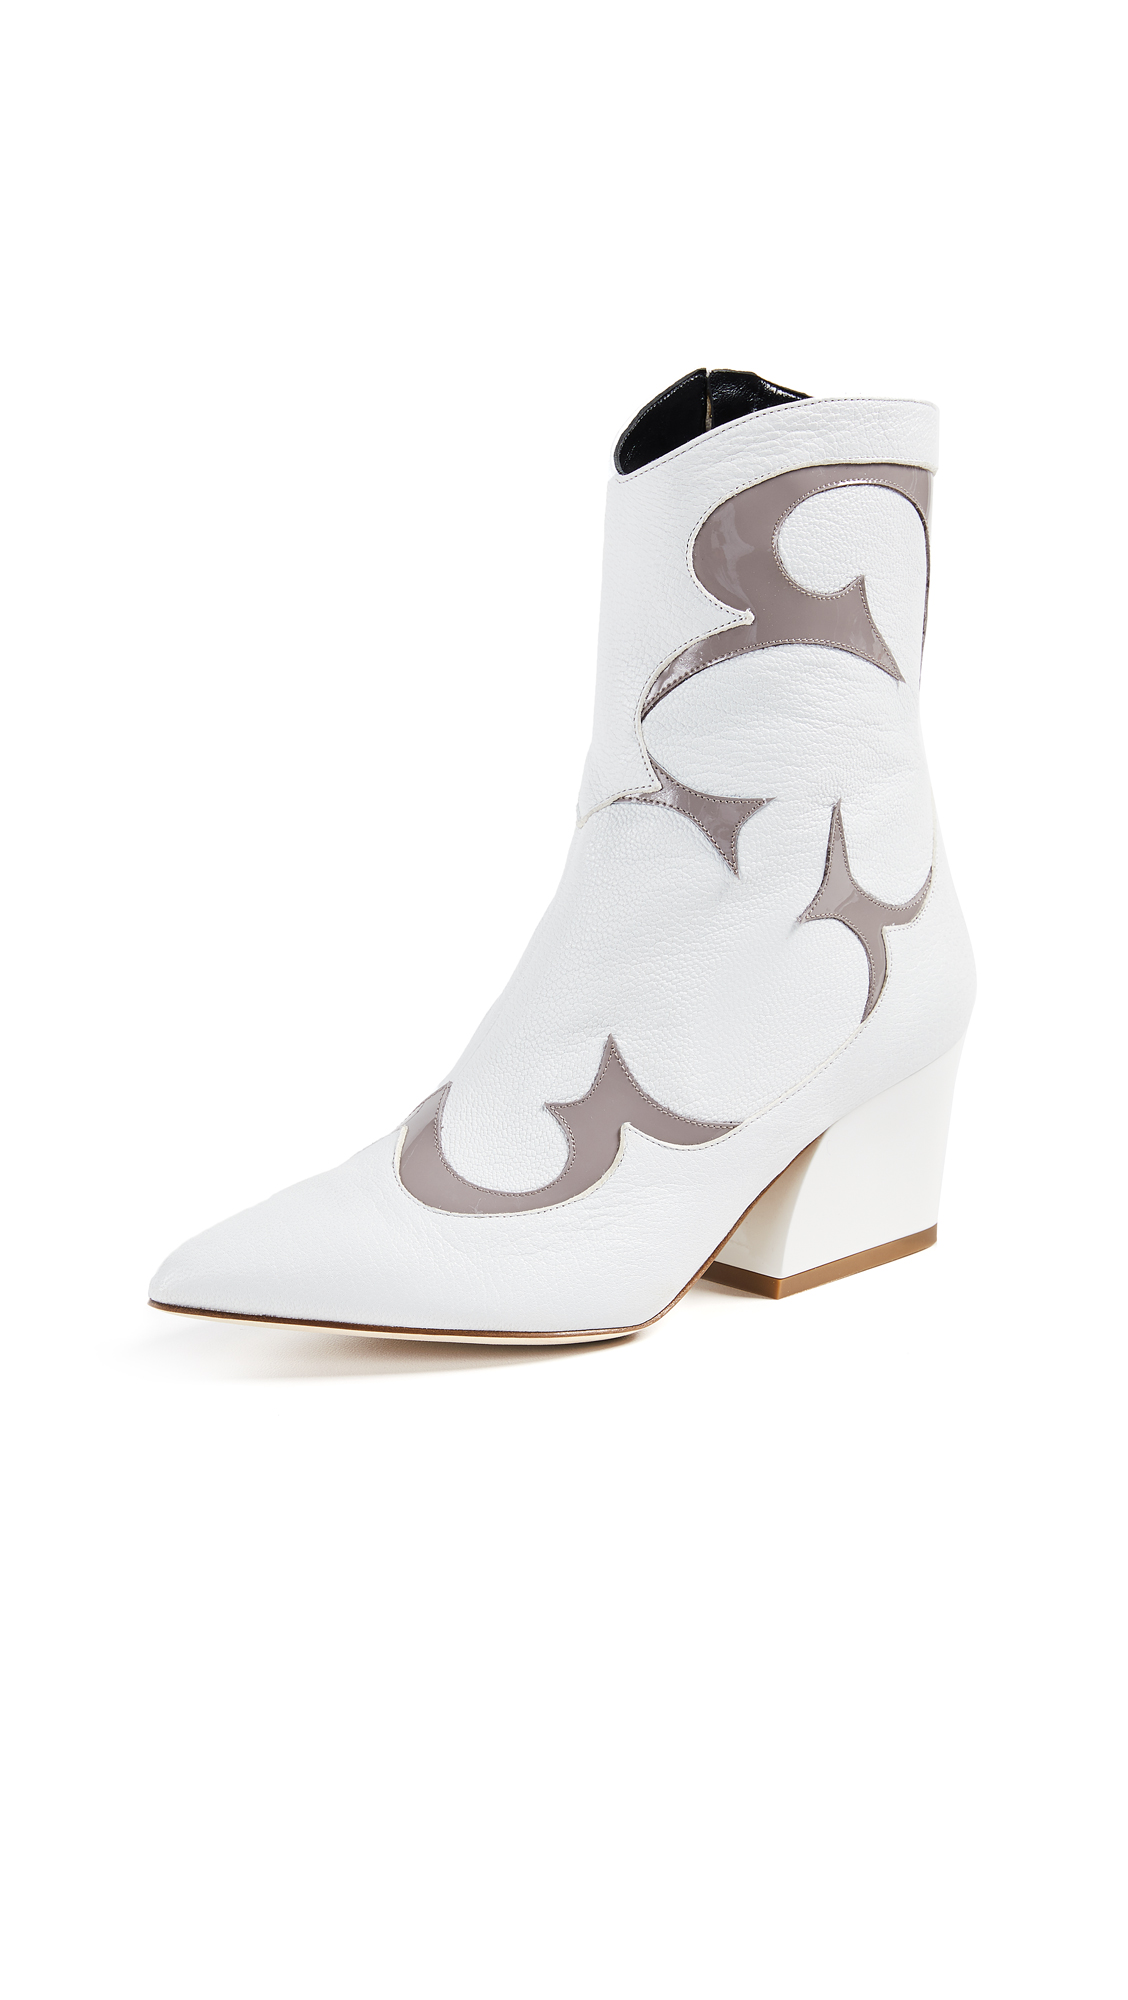 Tibi Felix Boots - Bright White/Grey Multi